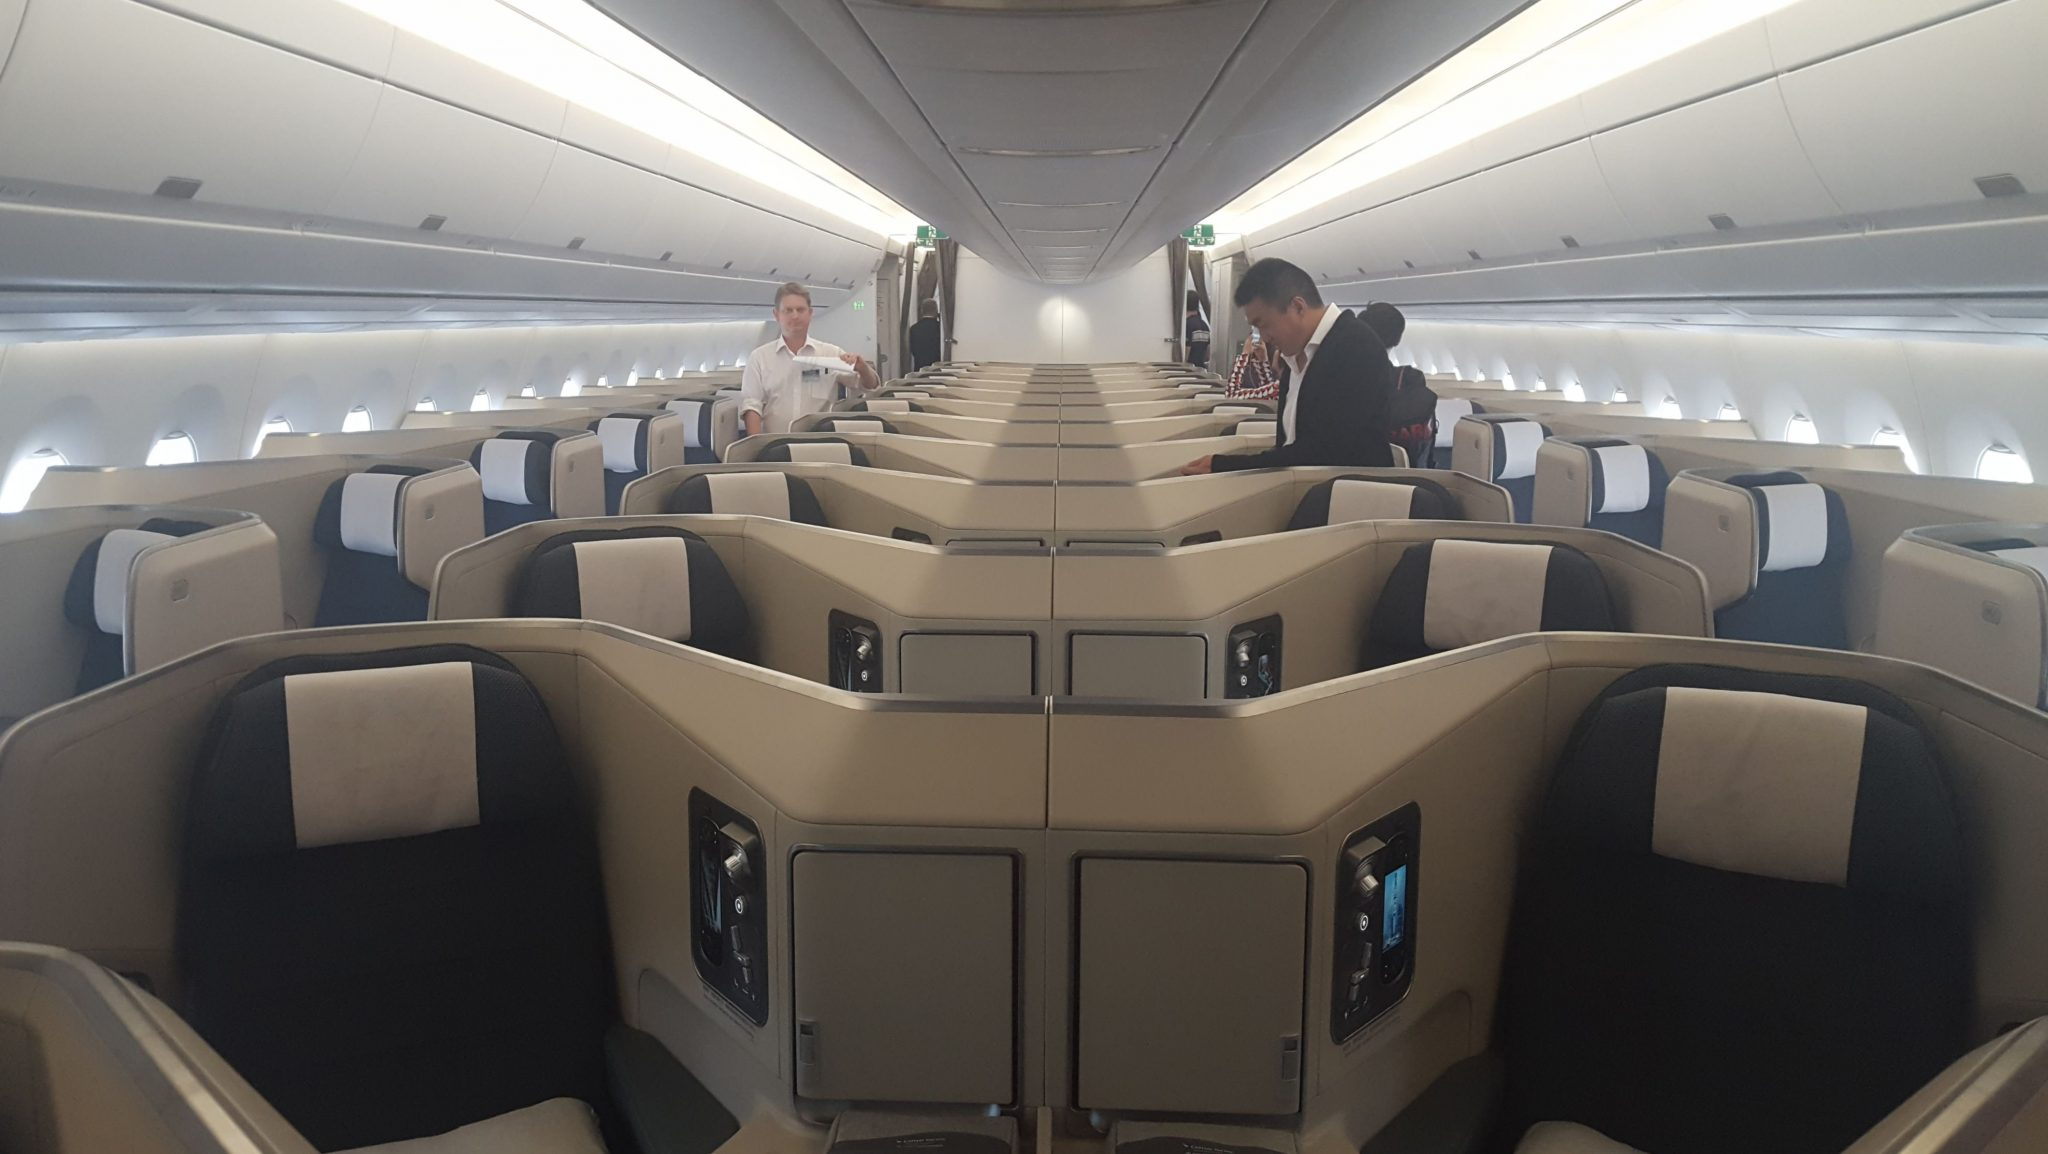 cathay pacific new business class interior classes Business class